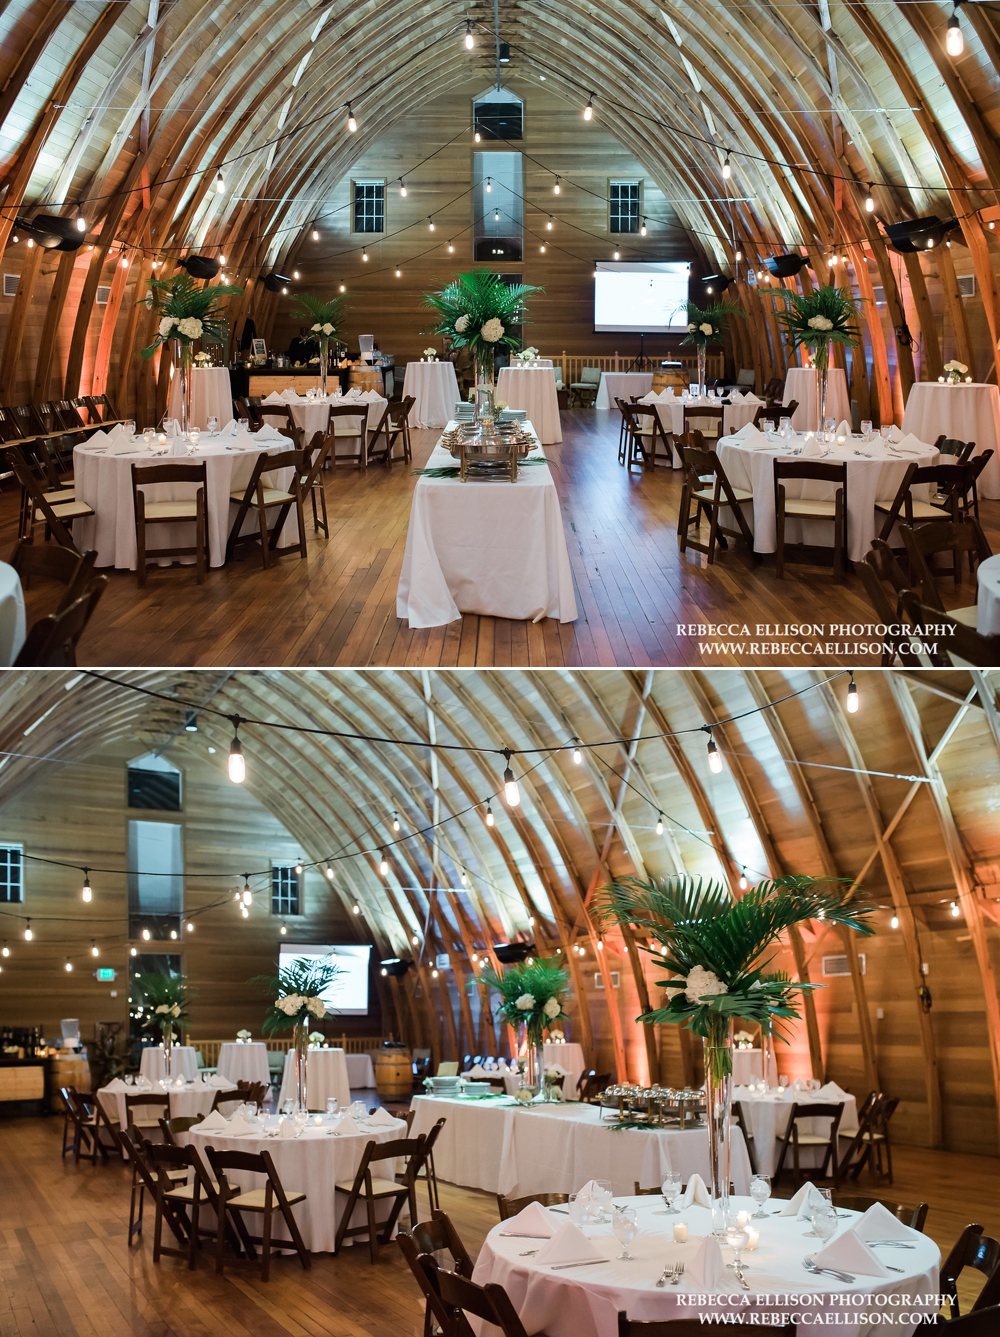 russels-catering-and-events